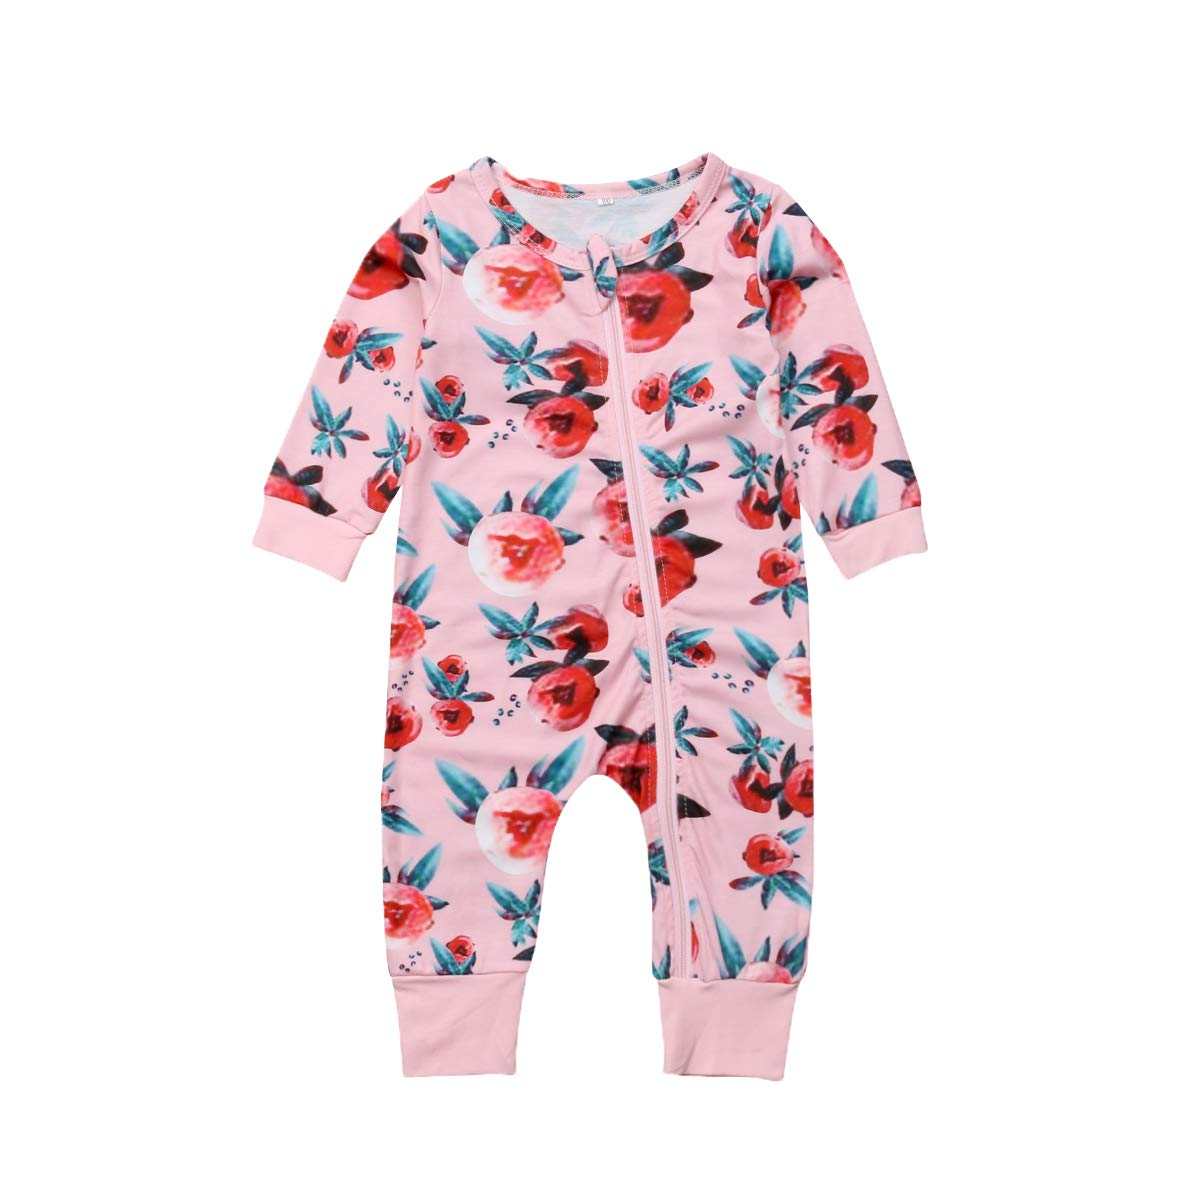 Baby Girl Flower Print Long Sleeve Zipper Romper Pajama Autumn Winter Casual Jumpsuit